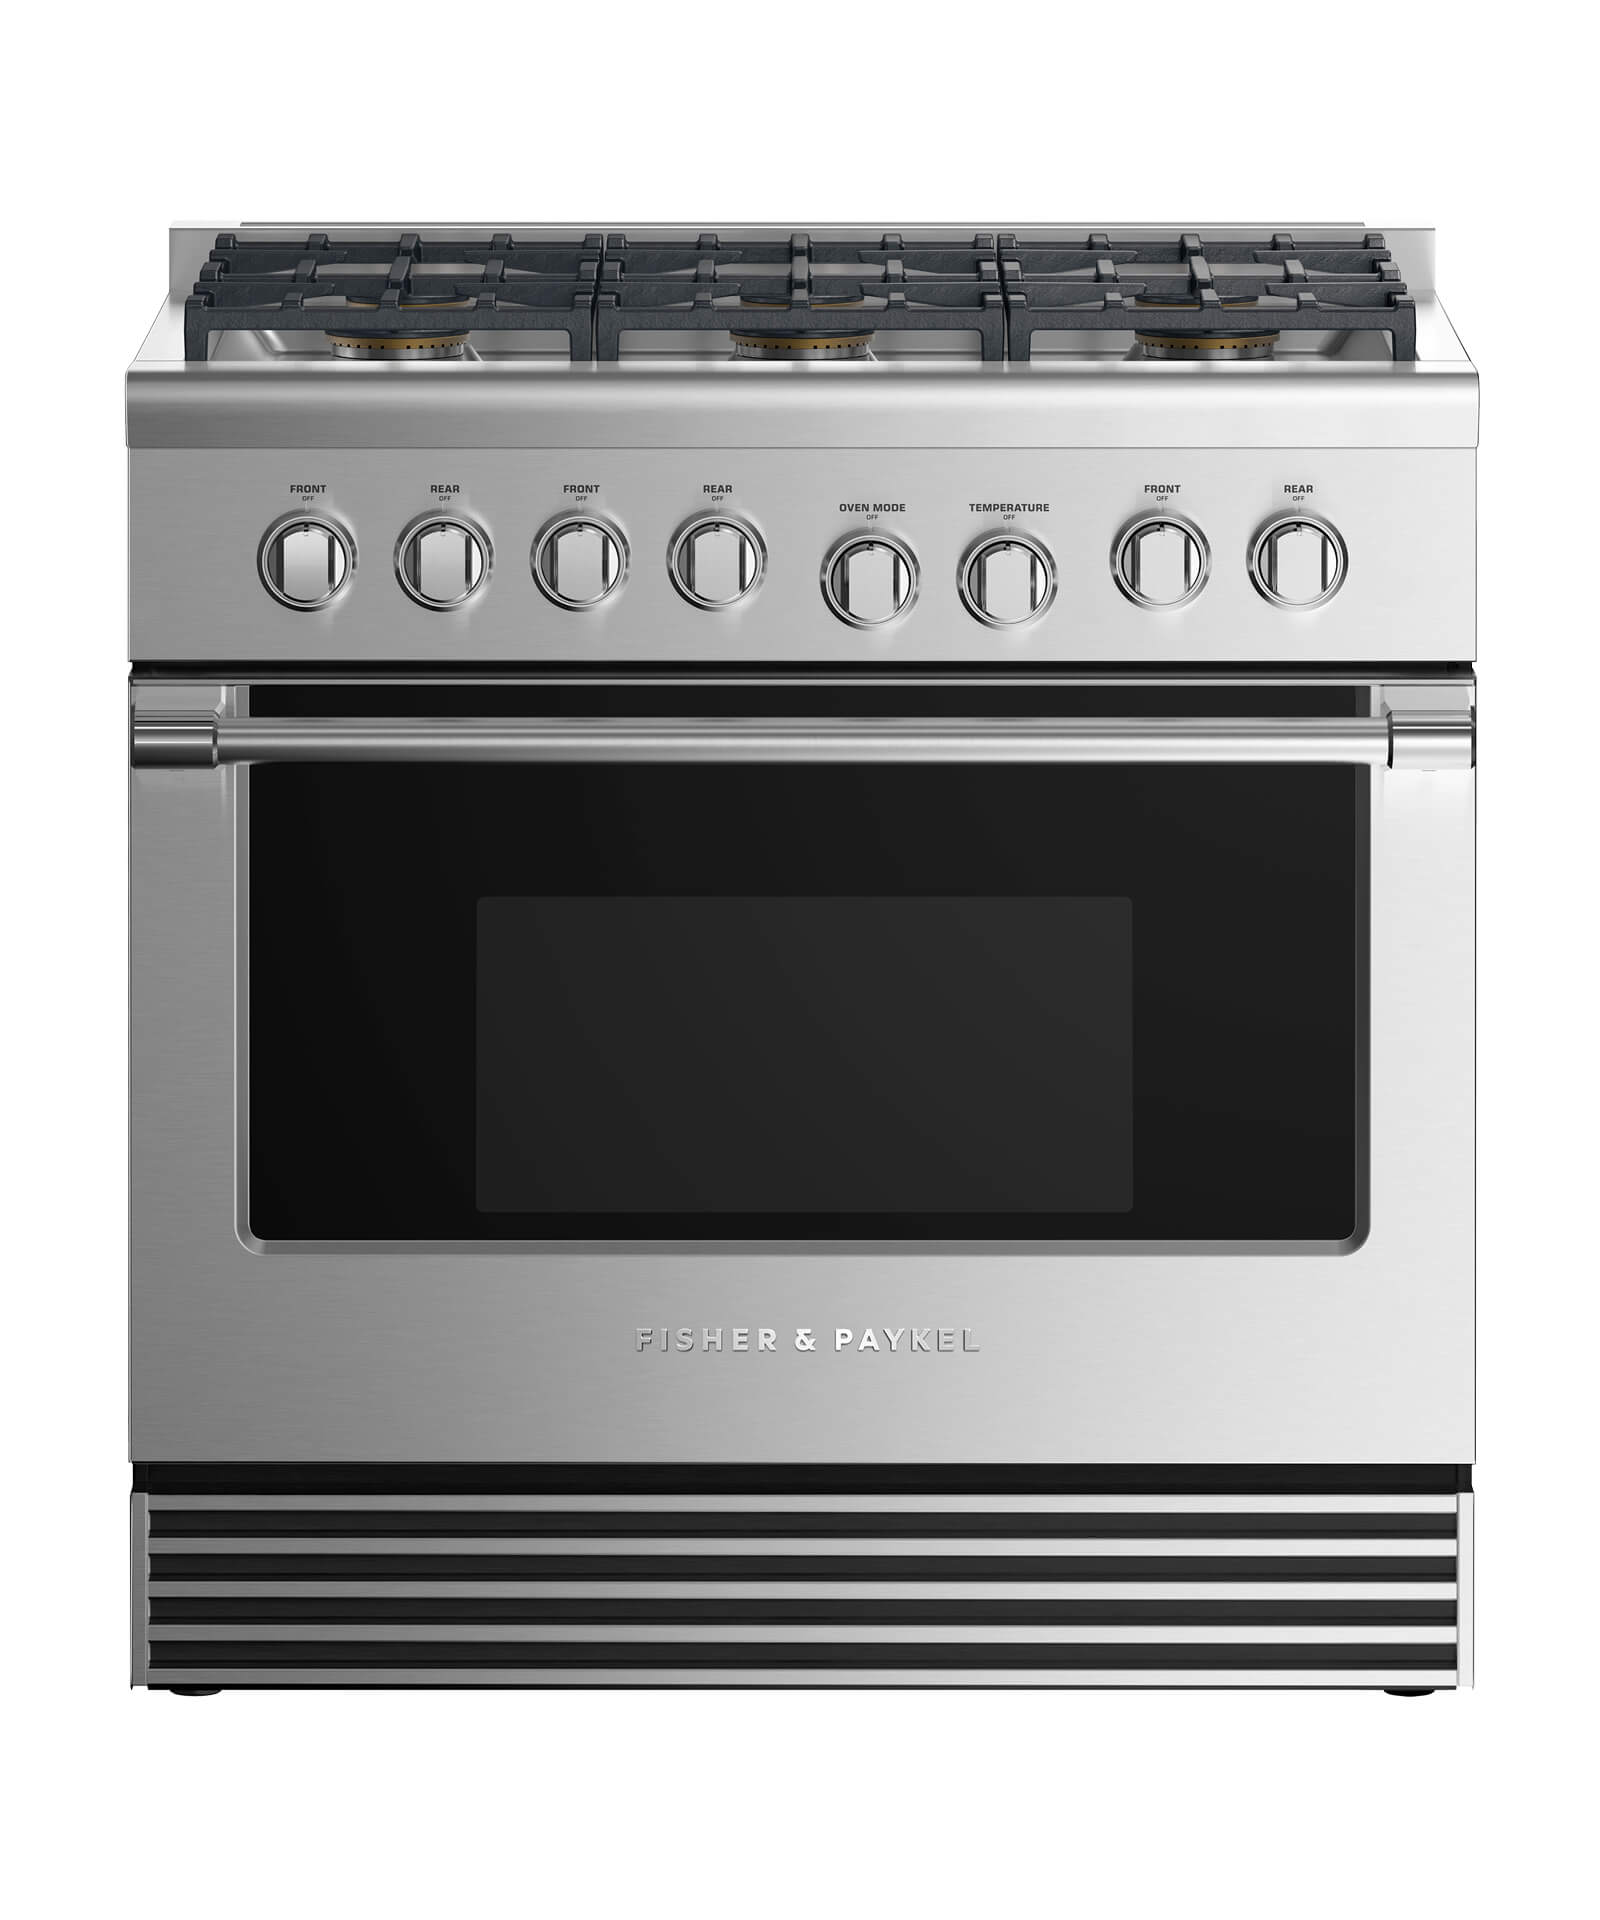 "Fisher and Paykel Dual Fuel Range 36"", 6 Burners"